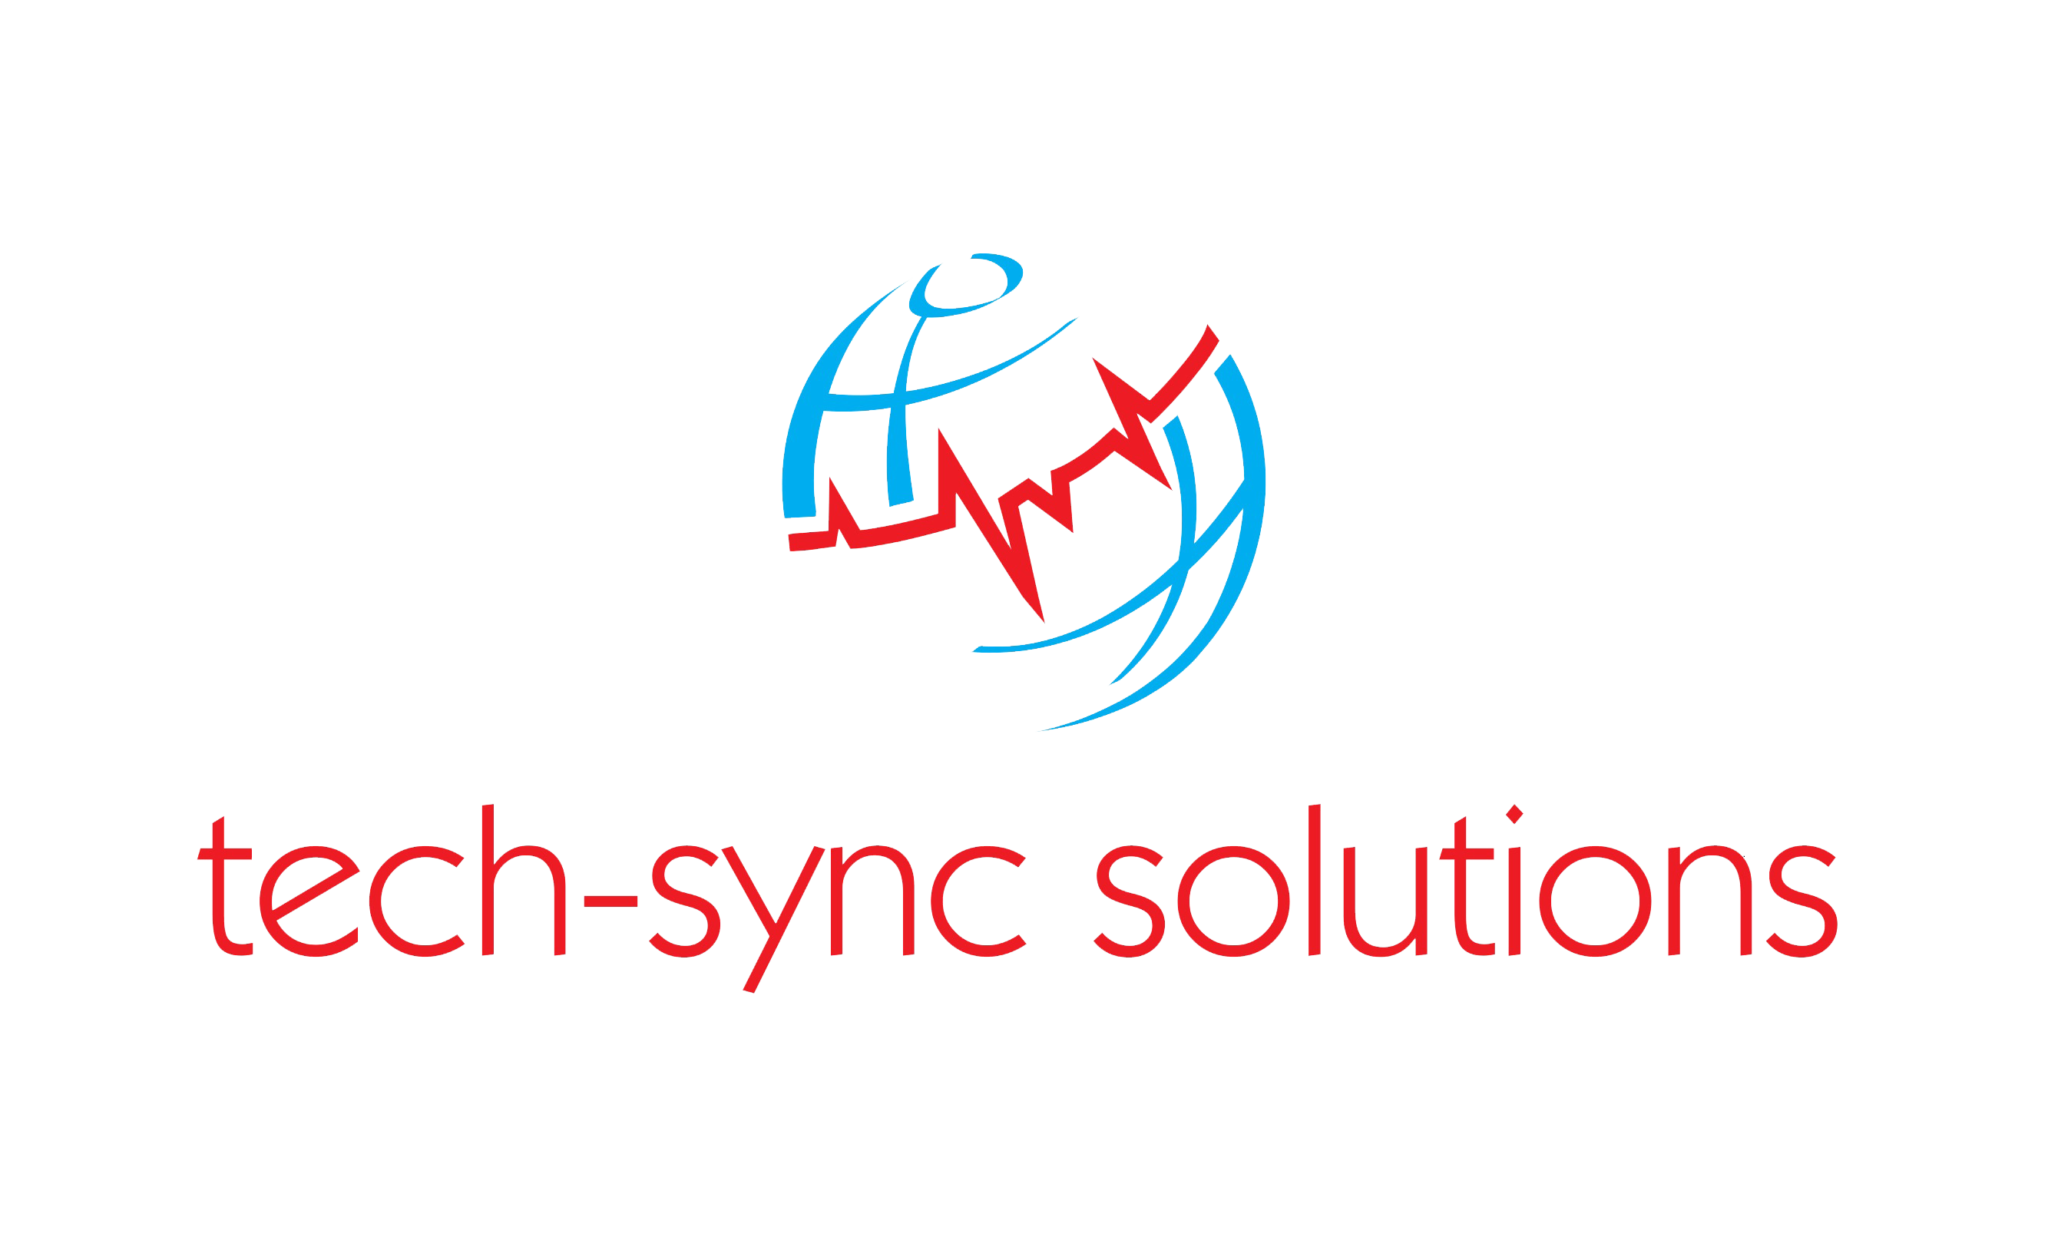 Tech-Sync Solutions